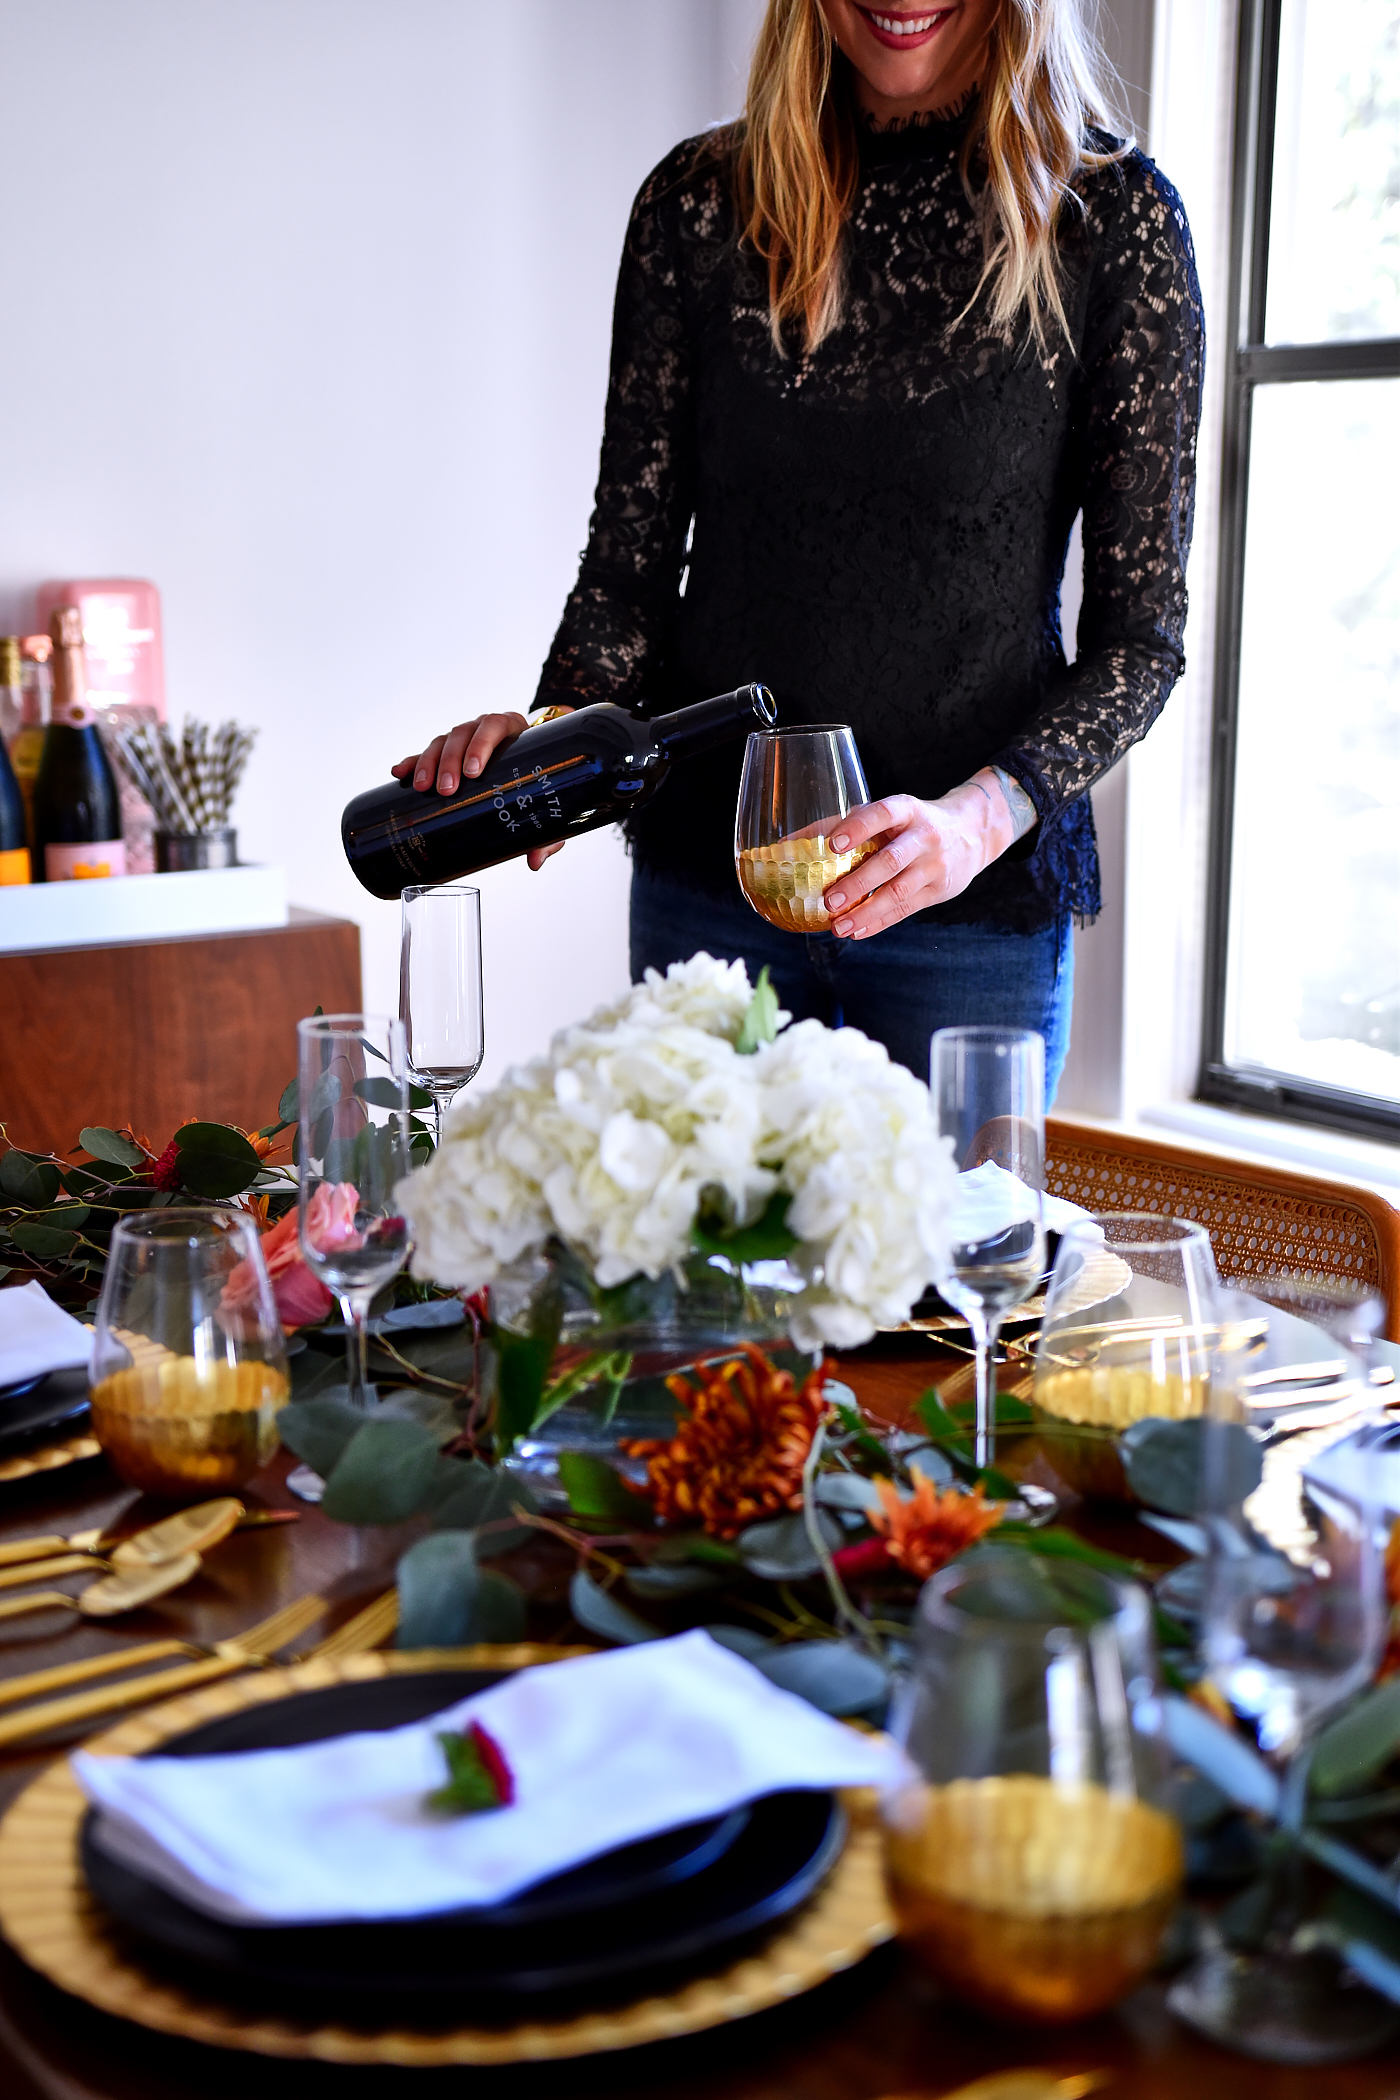 Thanksgiving Tablescape Ideas, Modern Thanksgiving Setting, Black Lace Top, Black & Gold Dinner Setting, Eucalyptus, Fall Flowers